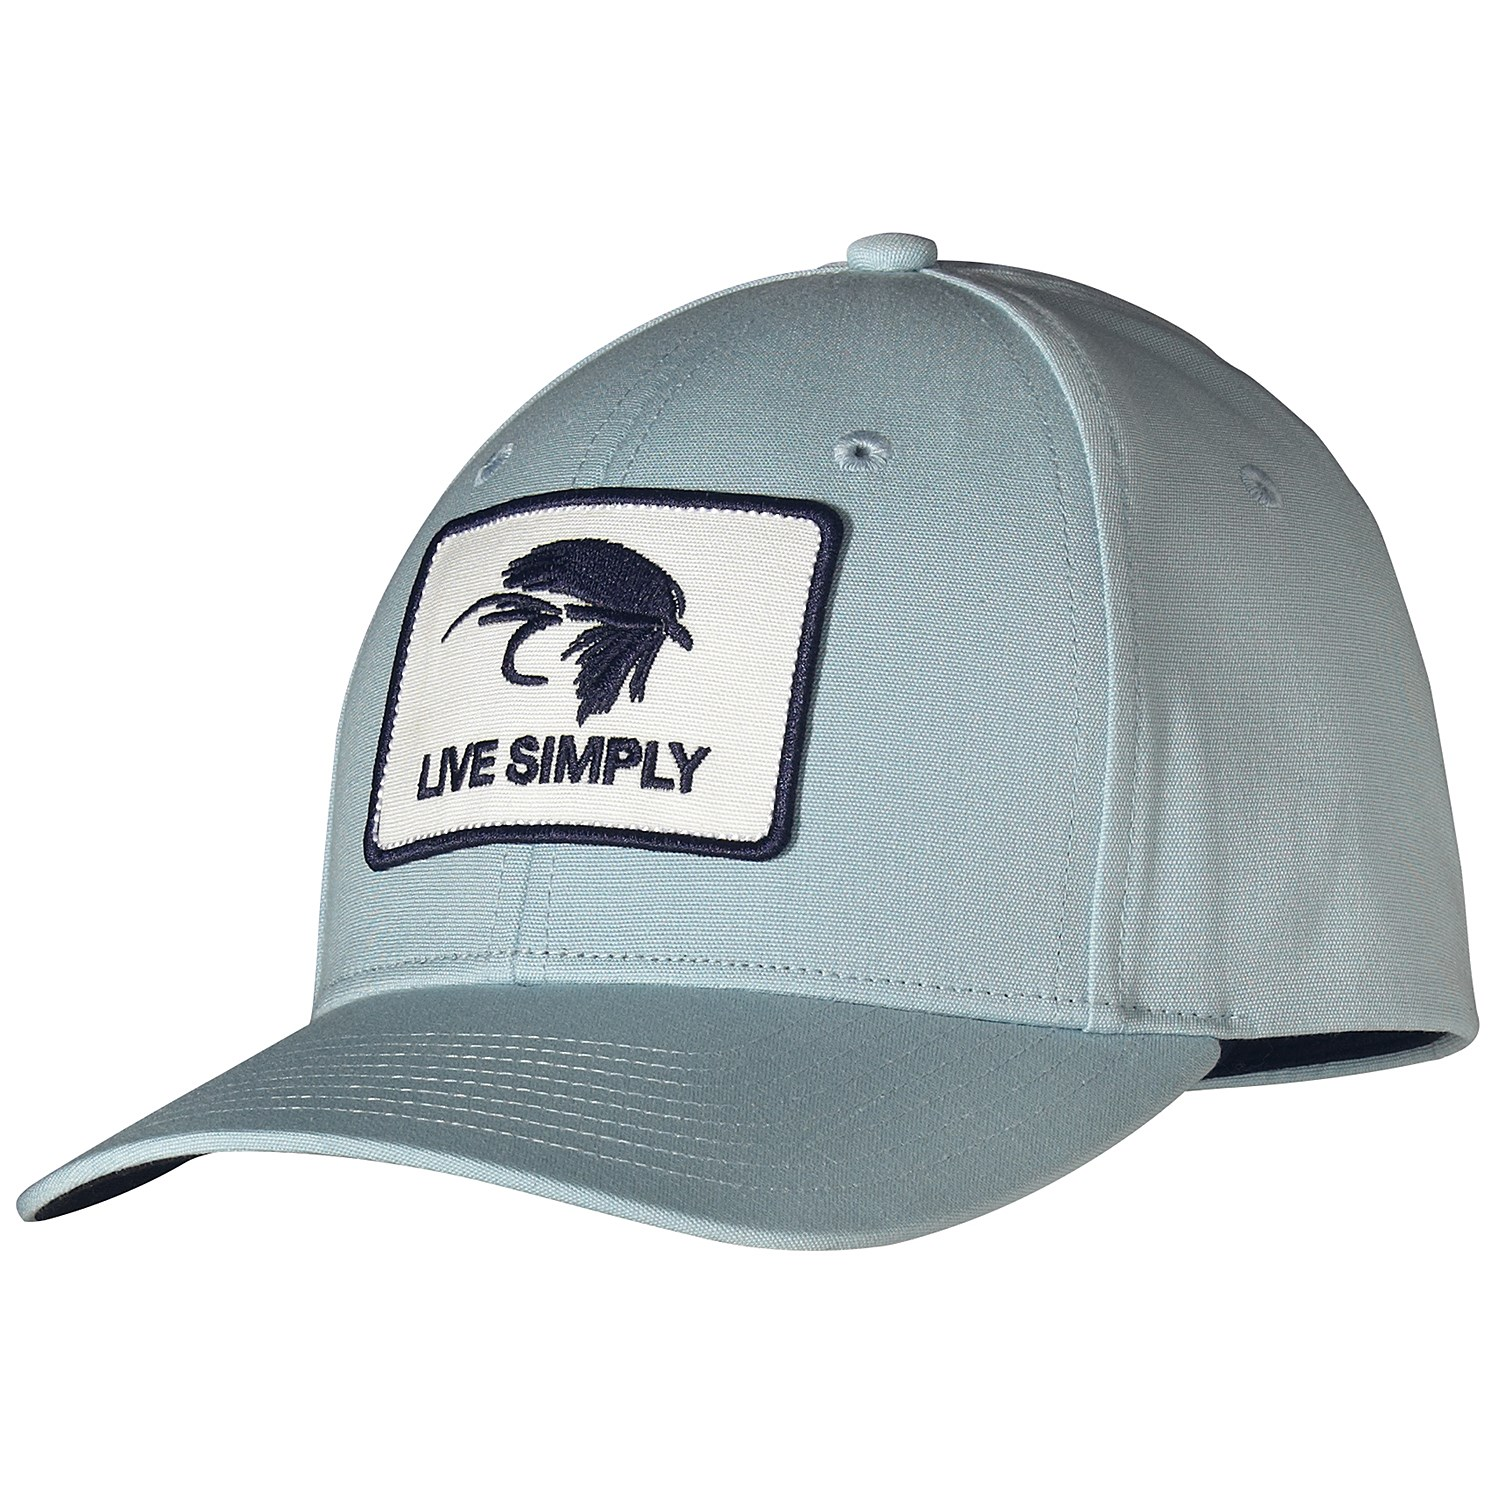 81cf736a0d Patagonia Live Simply Fly Roger That Hat